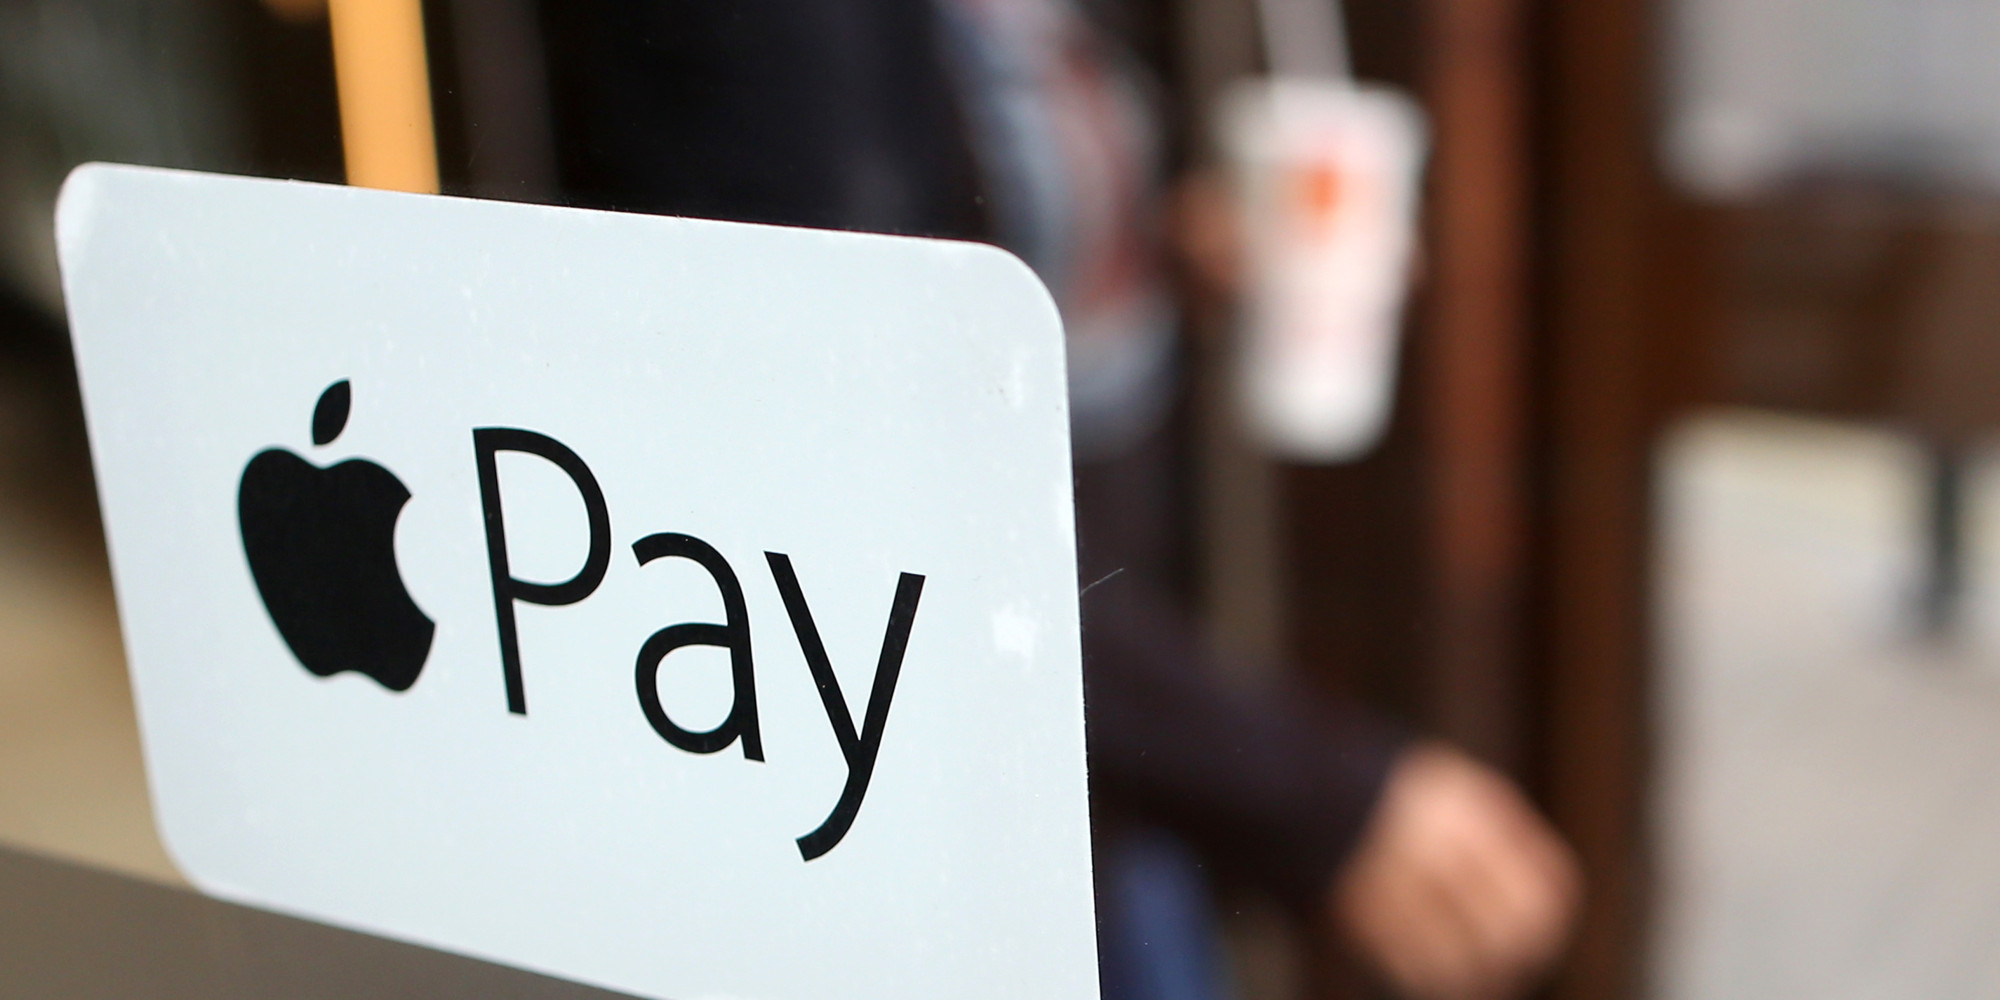 A sign for the launch of the Apple pay system, from Apple.Inc is seen displayed at the entrance to a McDonald's Corp. restaurant in London, U.K., on Tuesday, July 14, 2015. Apple Inc. is making the U.K. the first market outside the U.S. for its digital-wallet system as the company fights for a place in the electronic-payments industry. Photographer: Chris Ratcliffe/Bloomberg via Getty Images